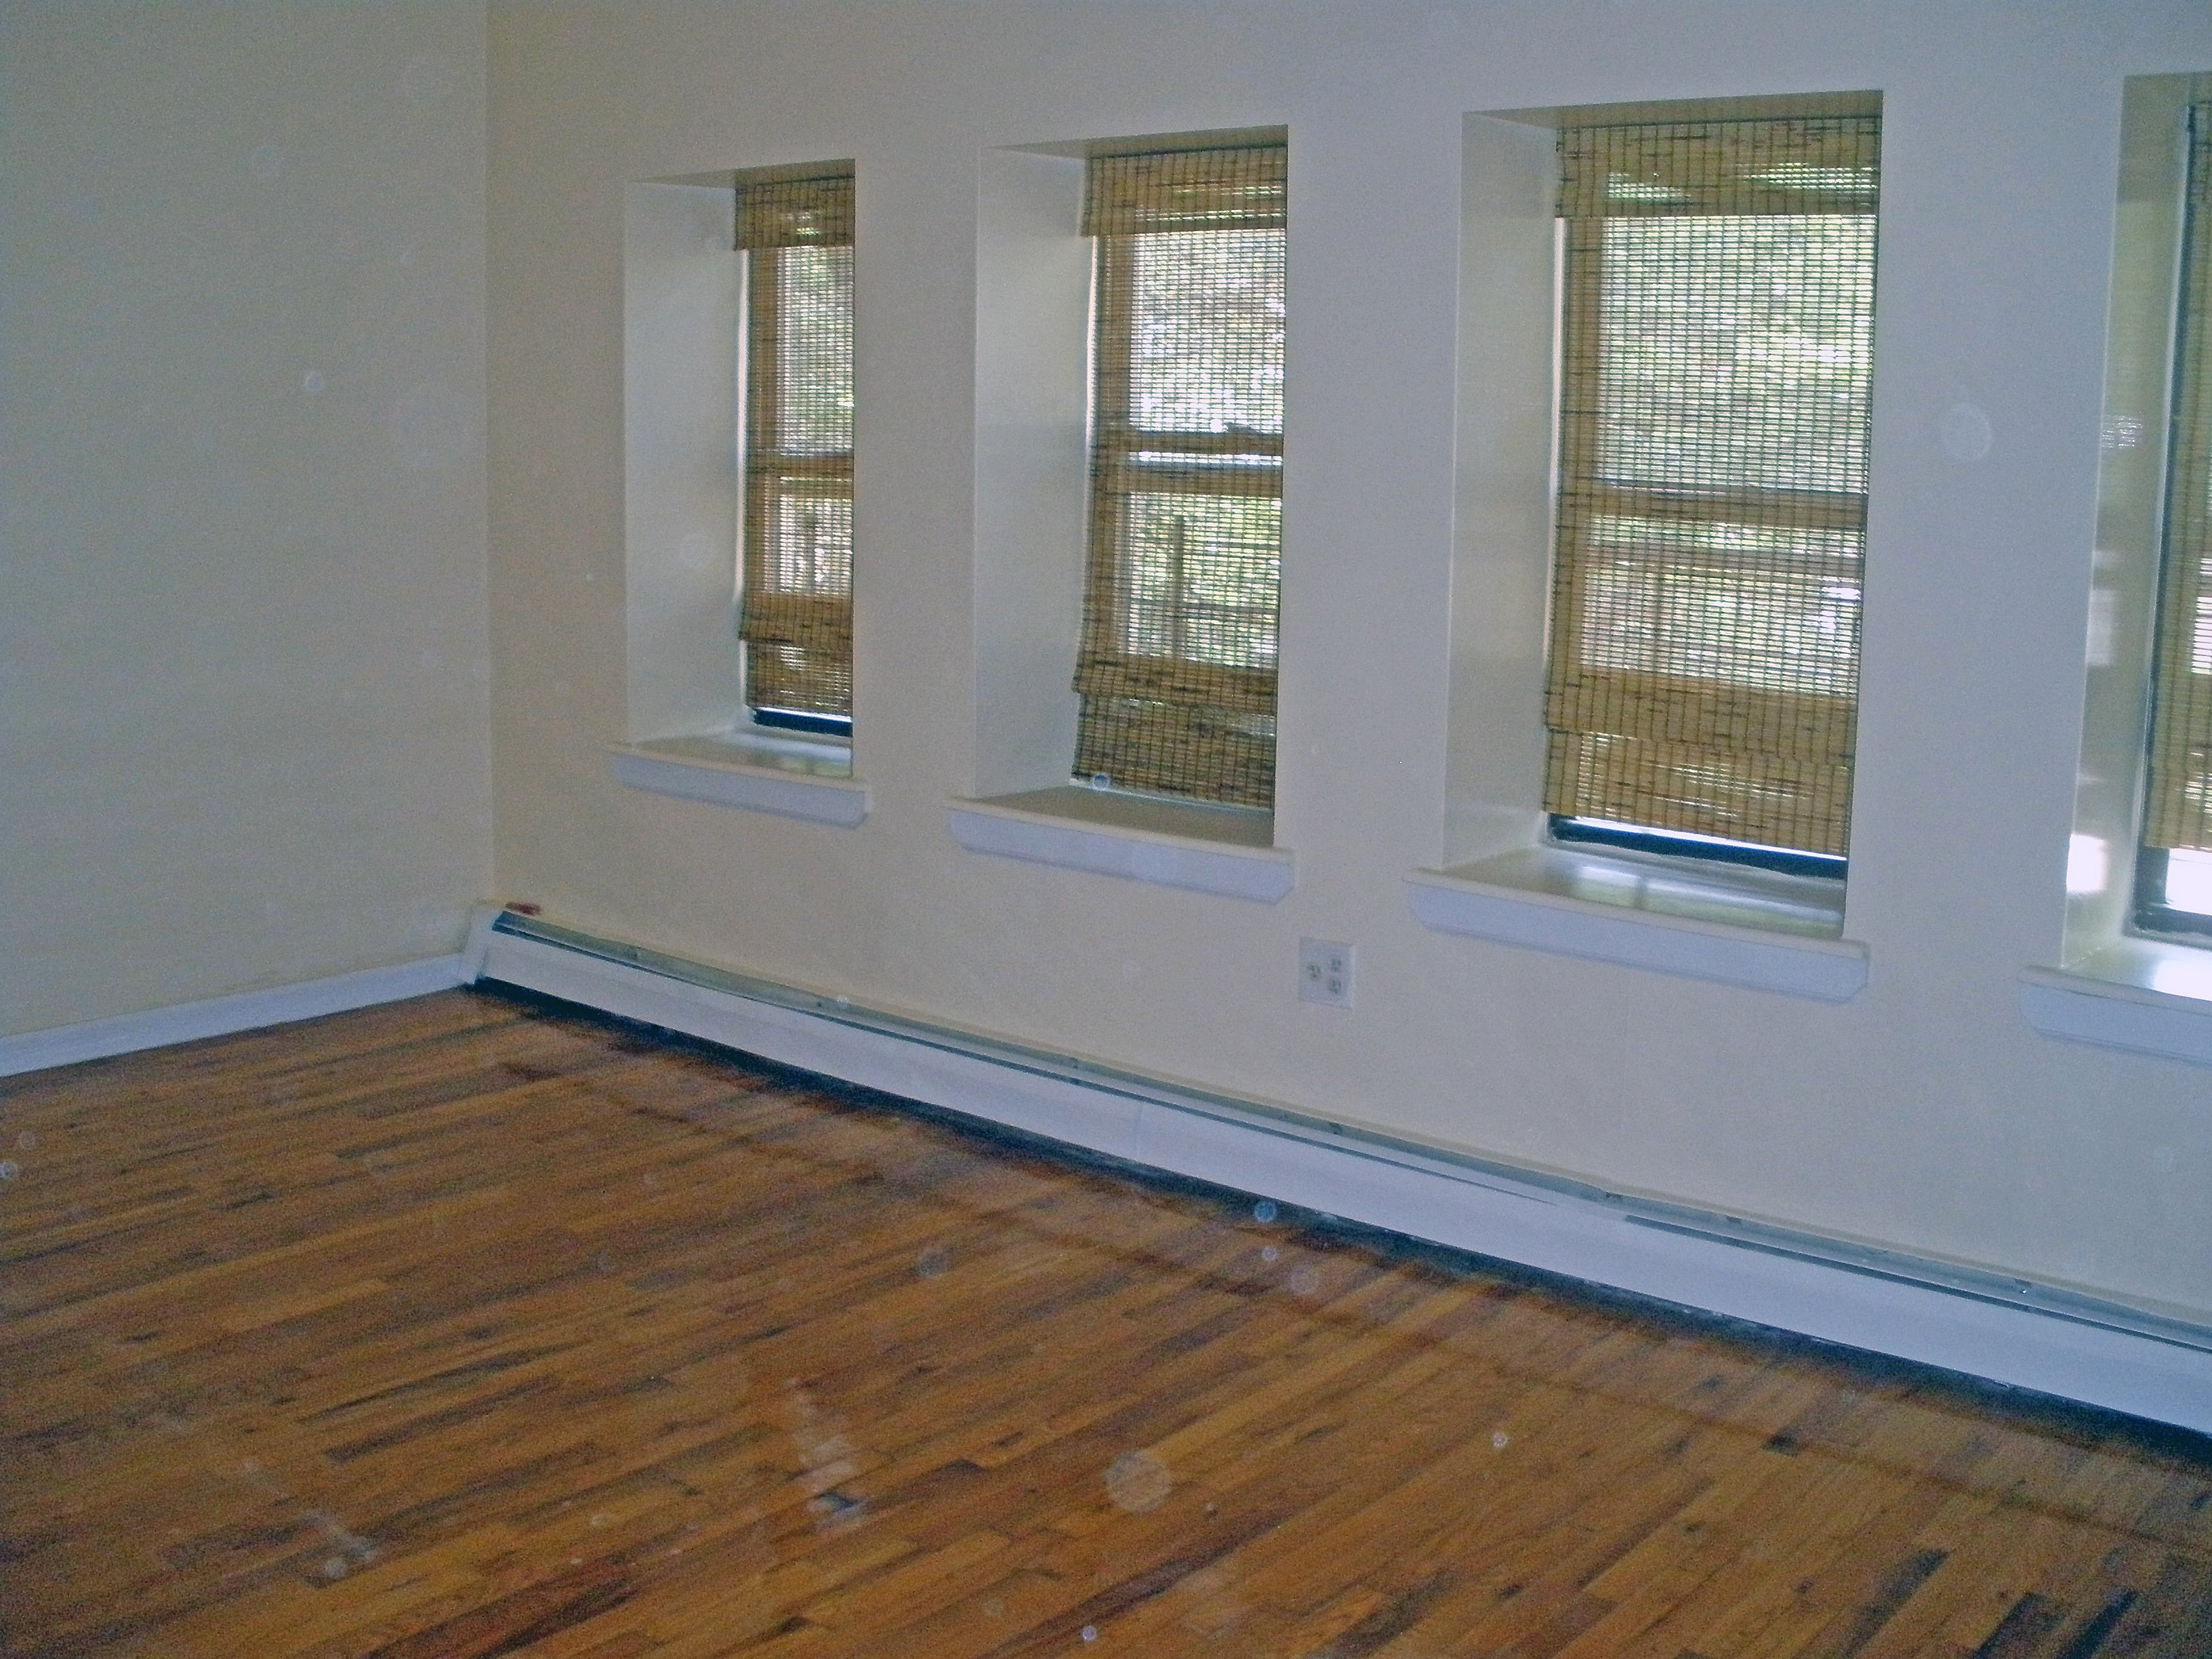 Bed Stuy 1 Bedroom Apartment For Rent Brooklyn Crg3116